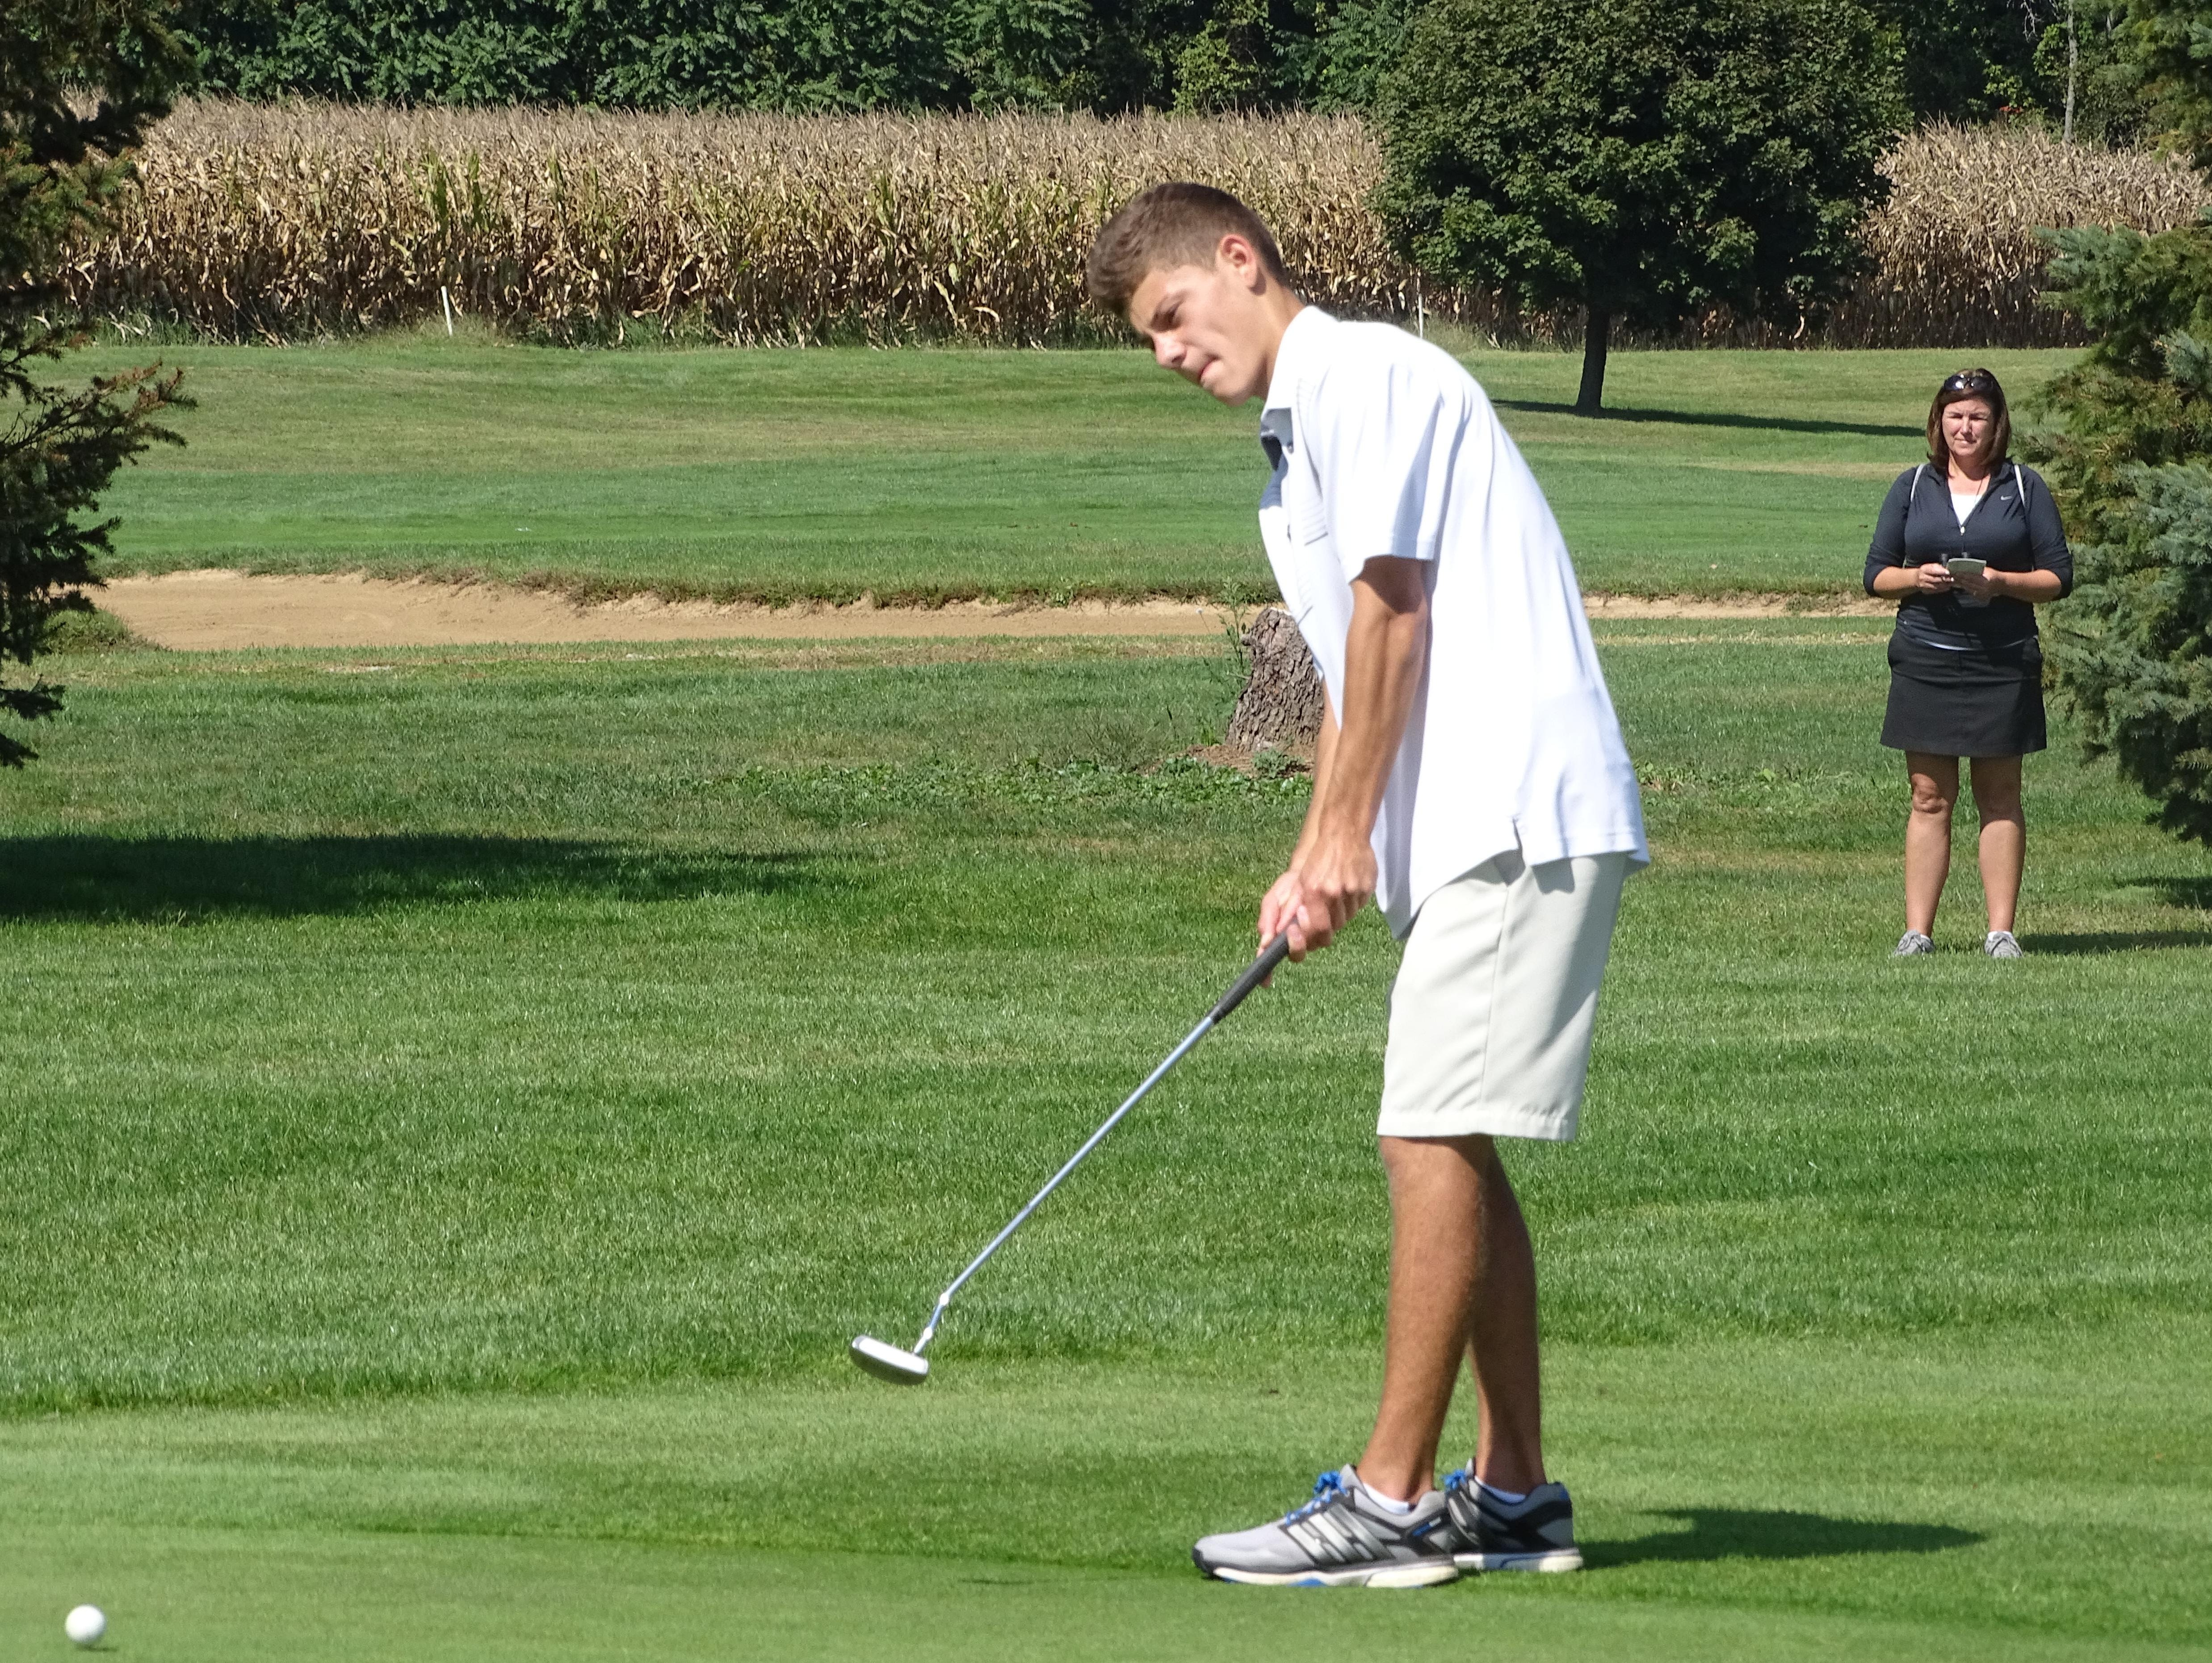 Zanesville's J.J. Burns putts Wednesday in the second round of the ECOL Tournament on Wednesday at River Greens. Burns, a senior, shot 80 as the Blue Devils placed second in the Scarlet Division.